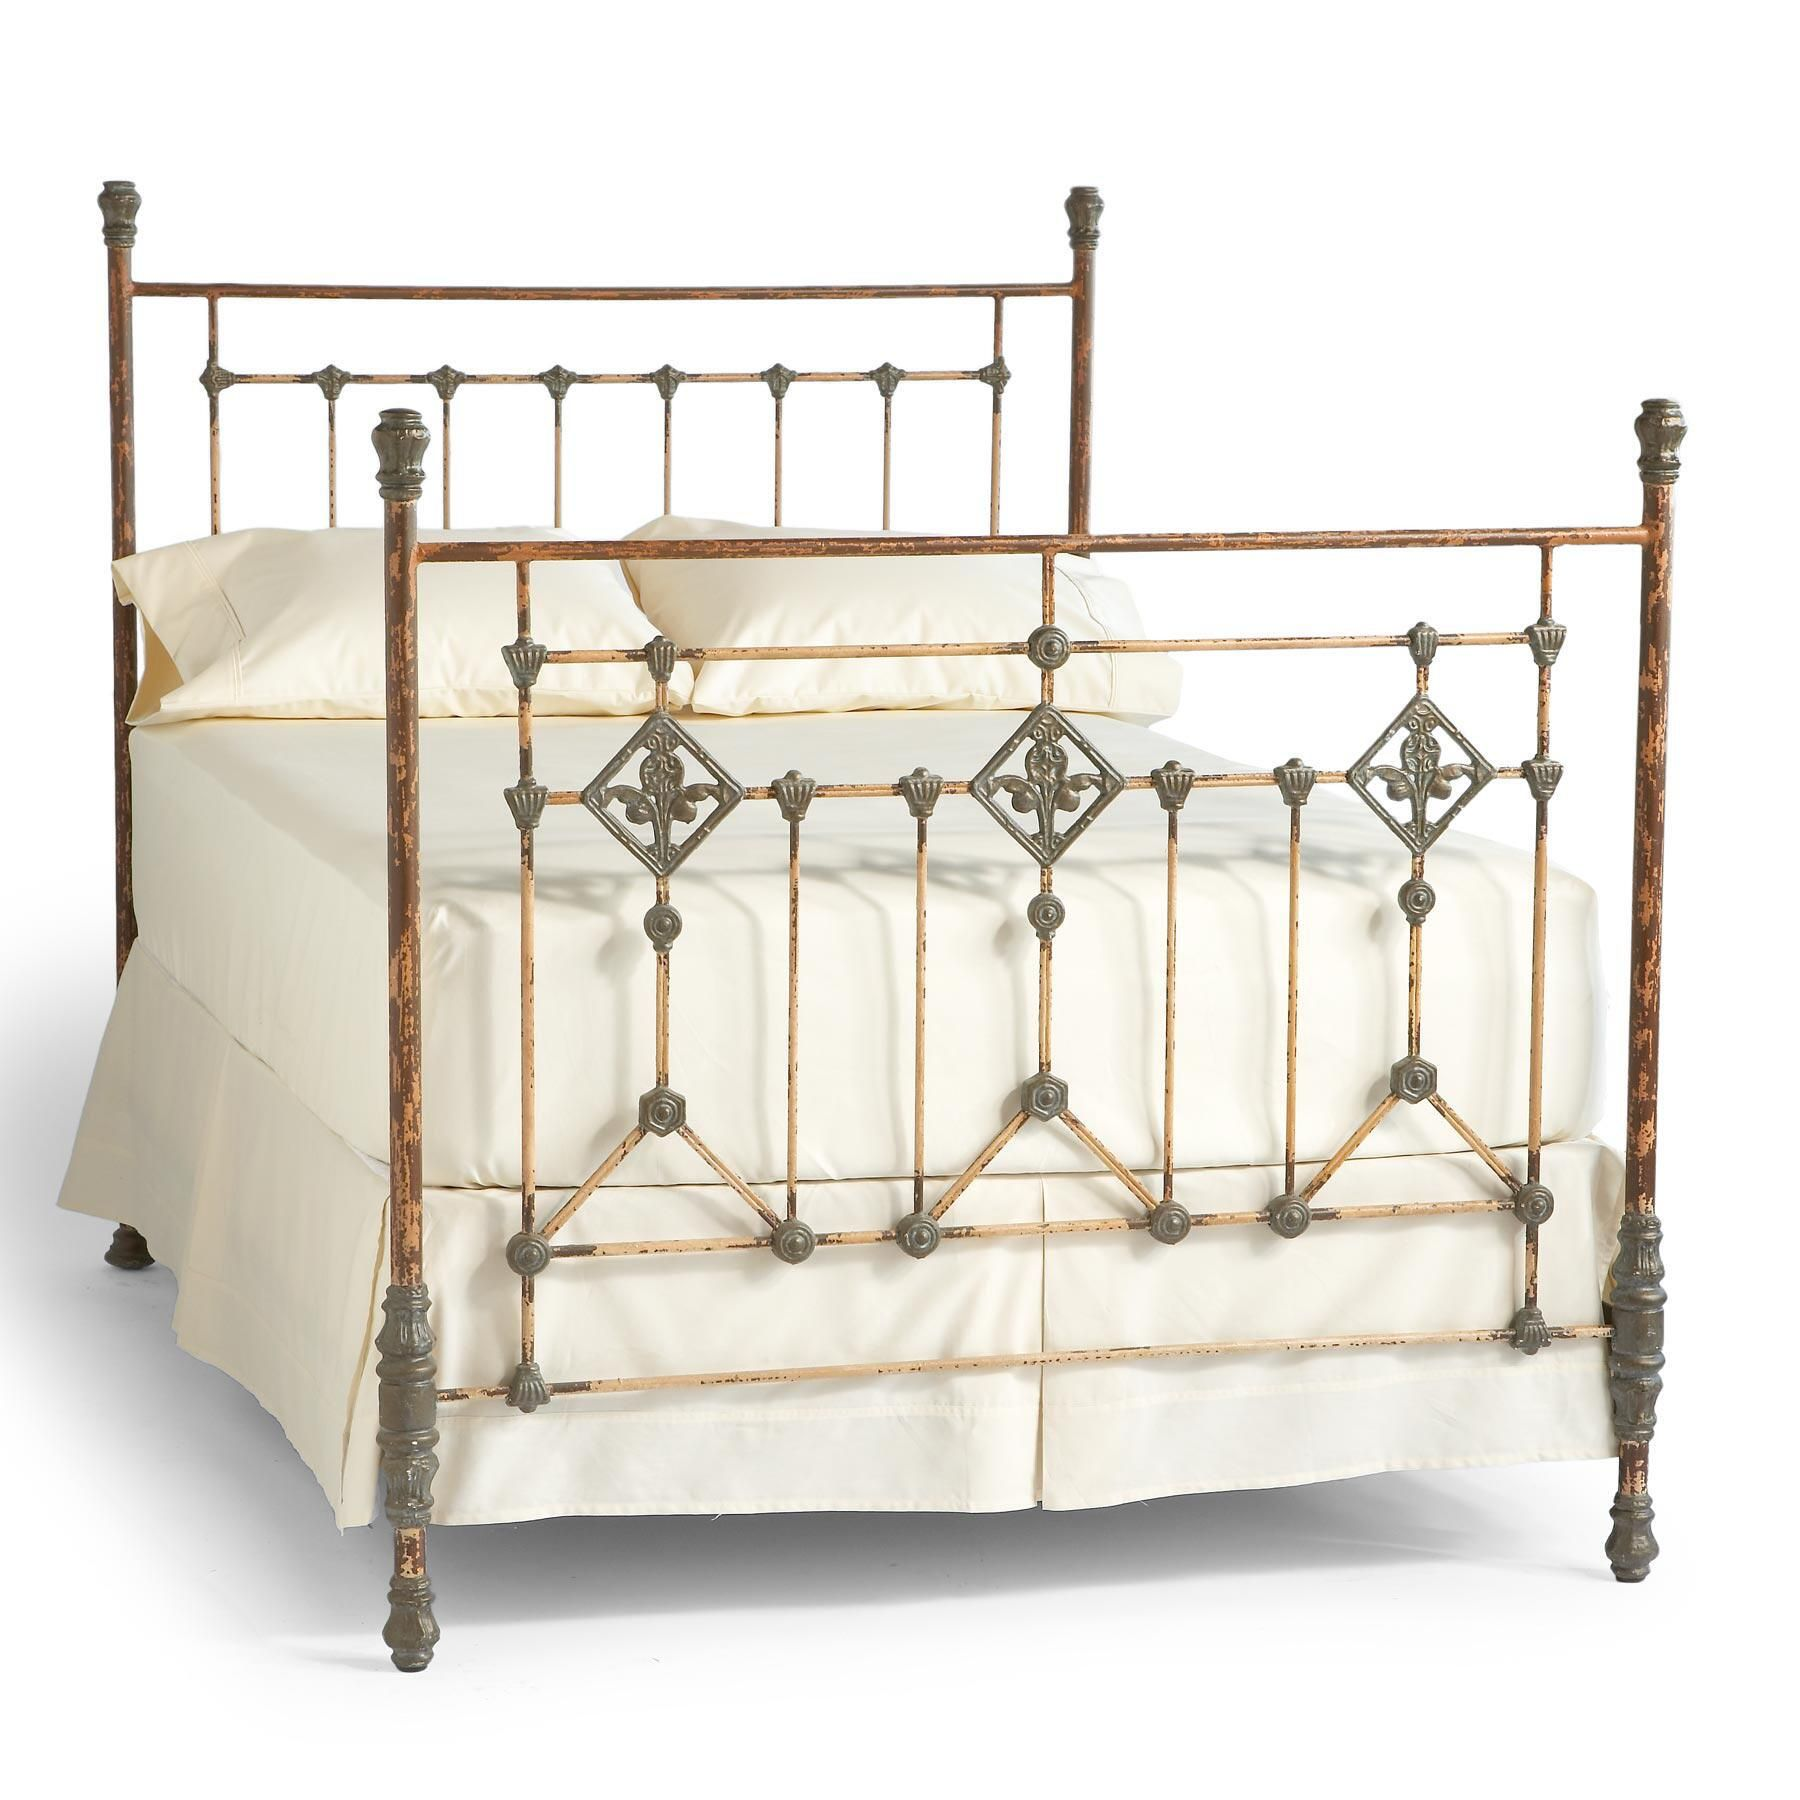 Handmade Steel Aluminum Bed Iron Bed Iron Bed Frame Bed